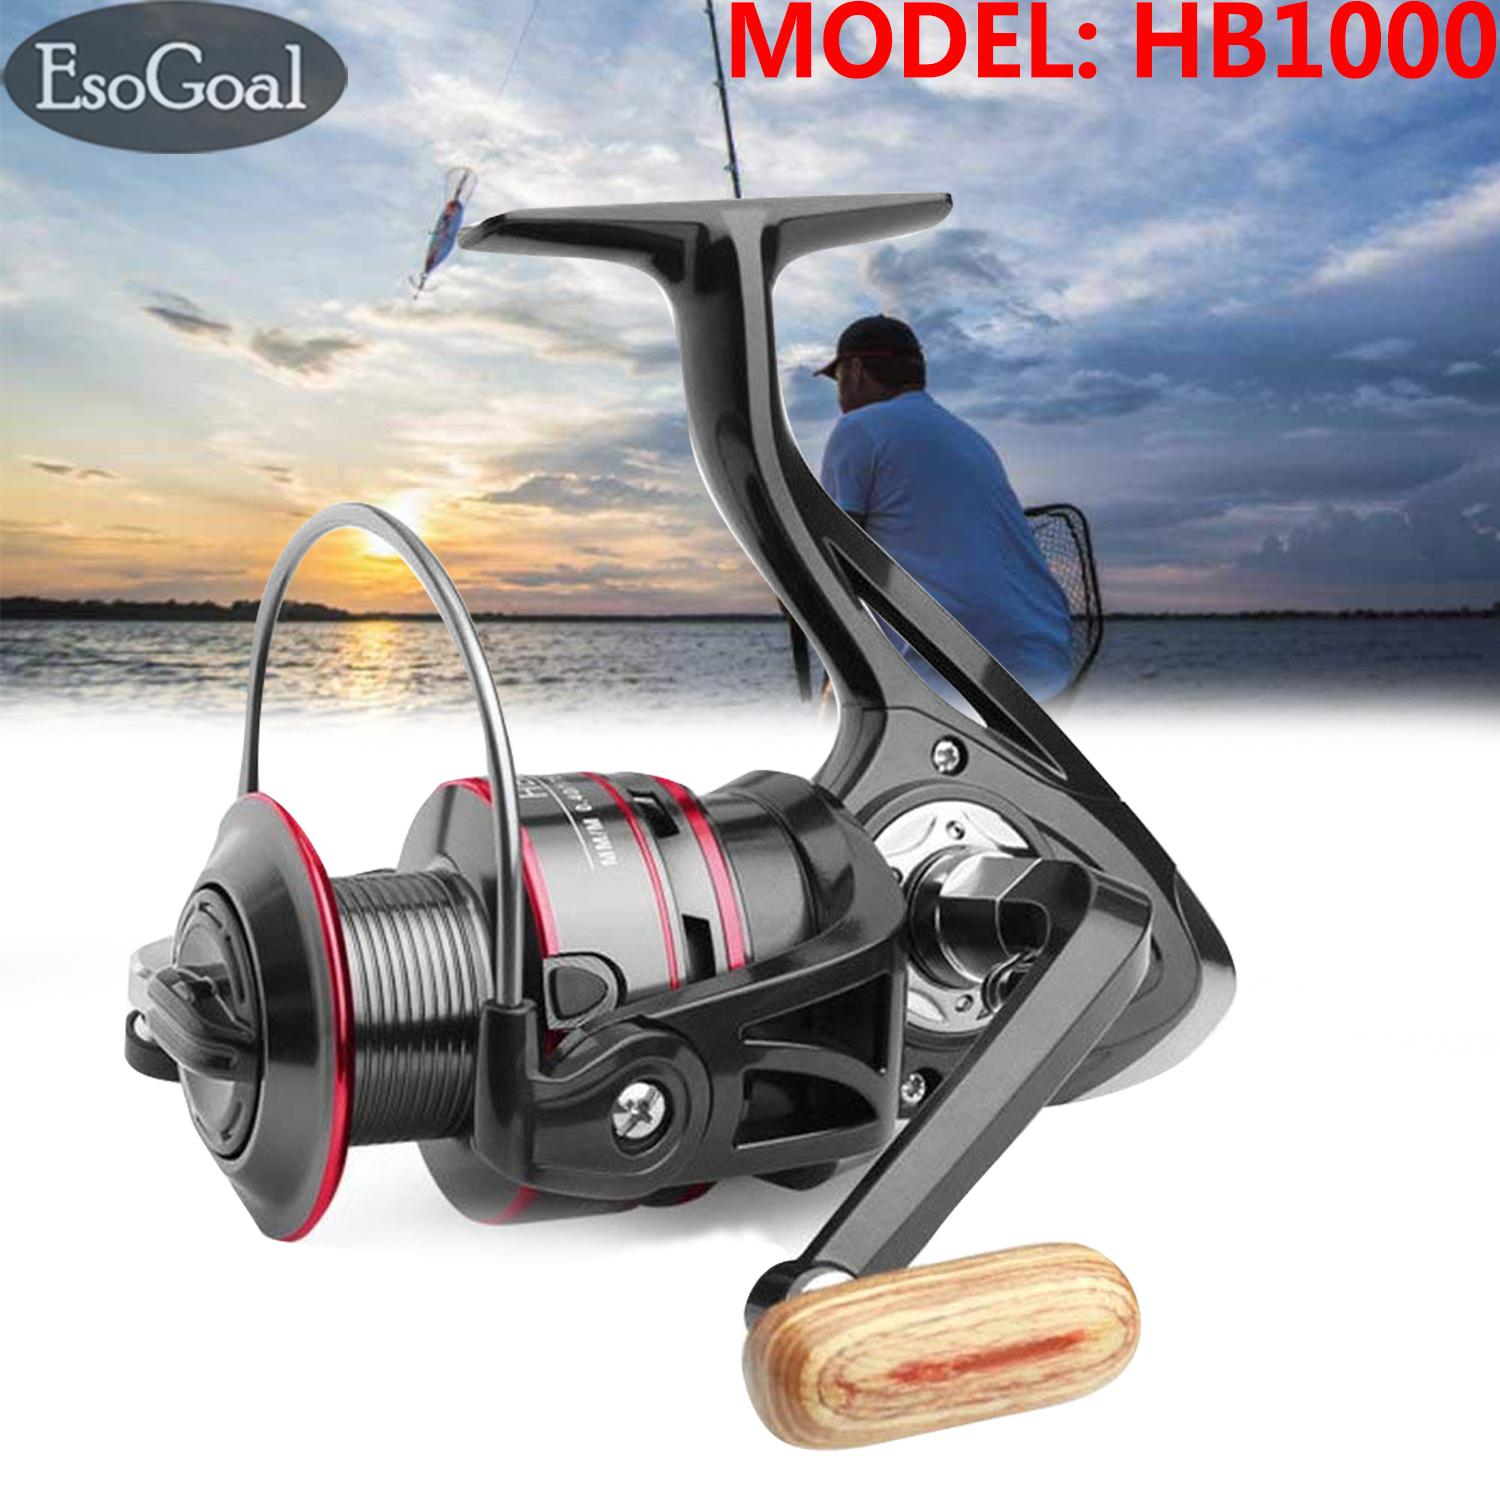 EsoGoal Fishing Reel, 11+1BB, Light Fish Reels and Smooth Powerful Spinning Reel